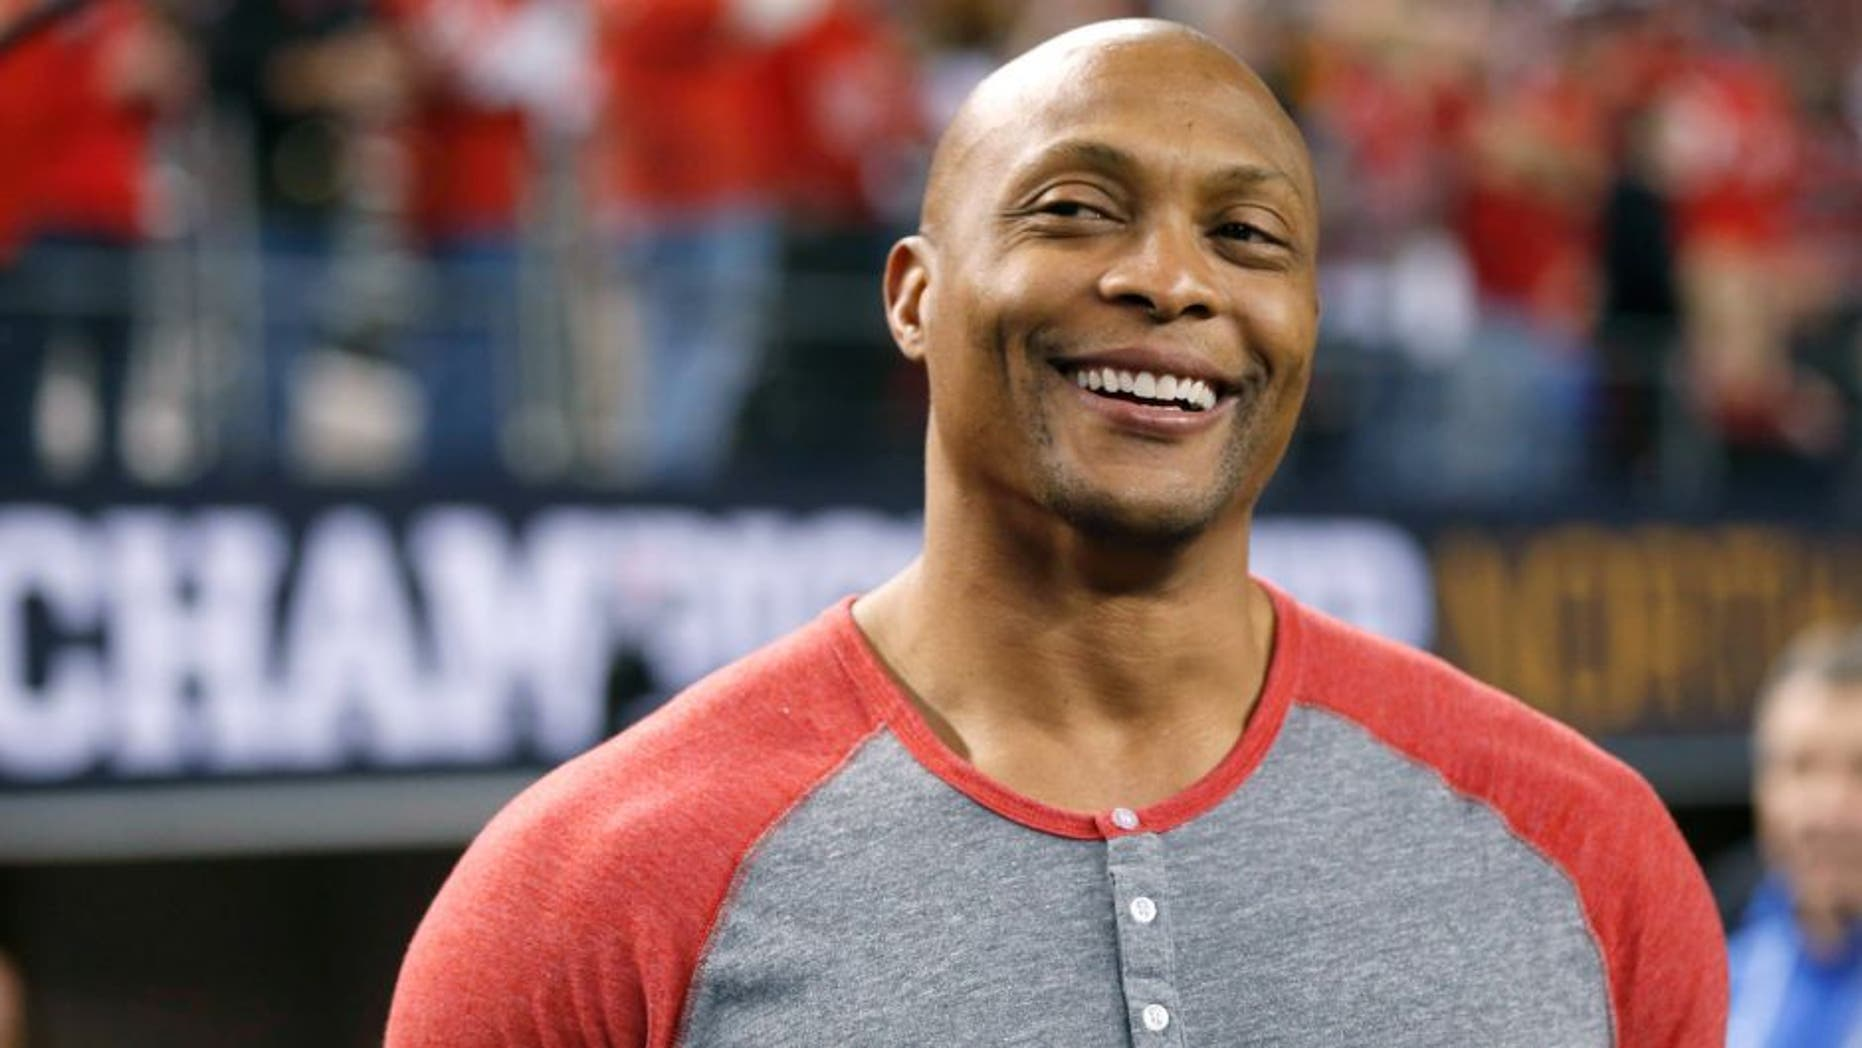 Jan 12, 2015; Arlington, TX, USA; Ohio State Buckeyes former running back Eddie George before the 2015 CFP National Championship Game against the Oregon Ducks at AT&T Stadium. Mandatory Credit: Matthew Emmons-USA TODAY Sports